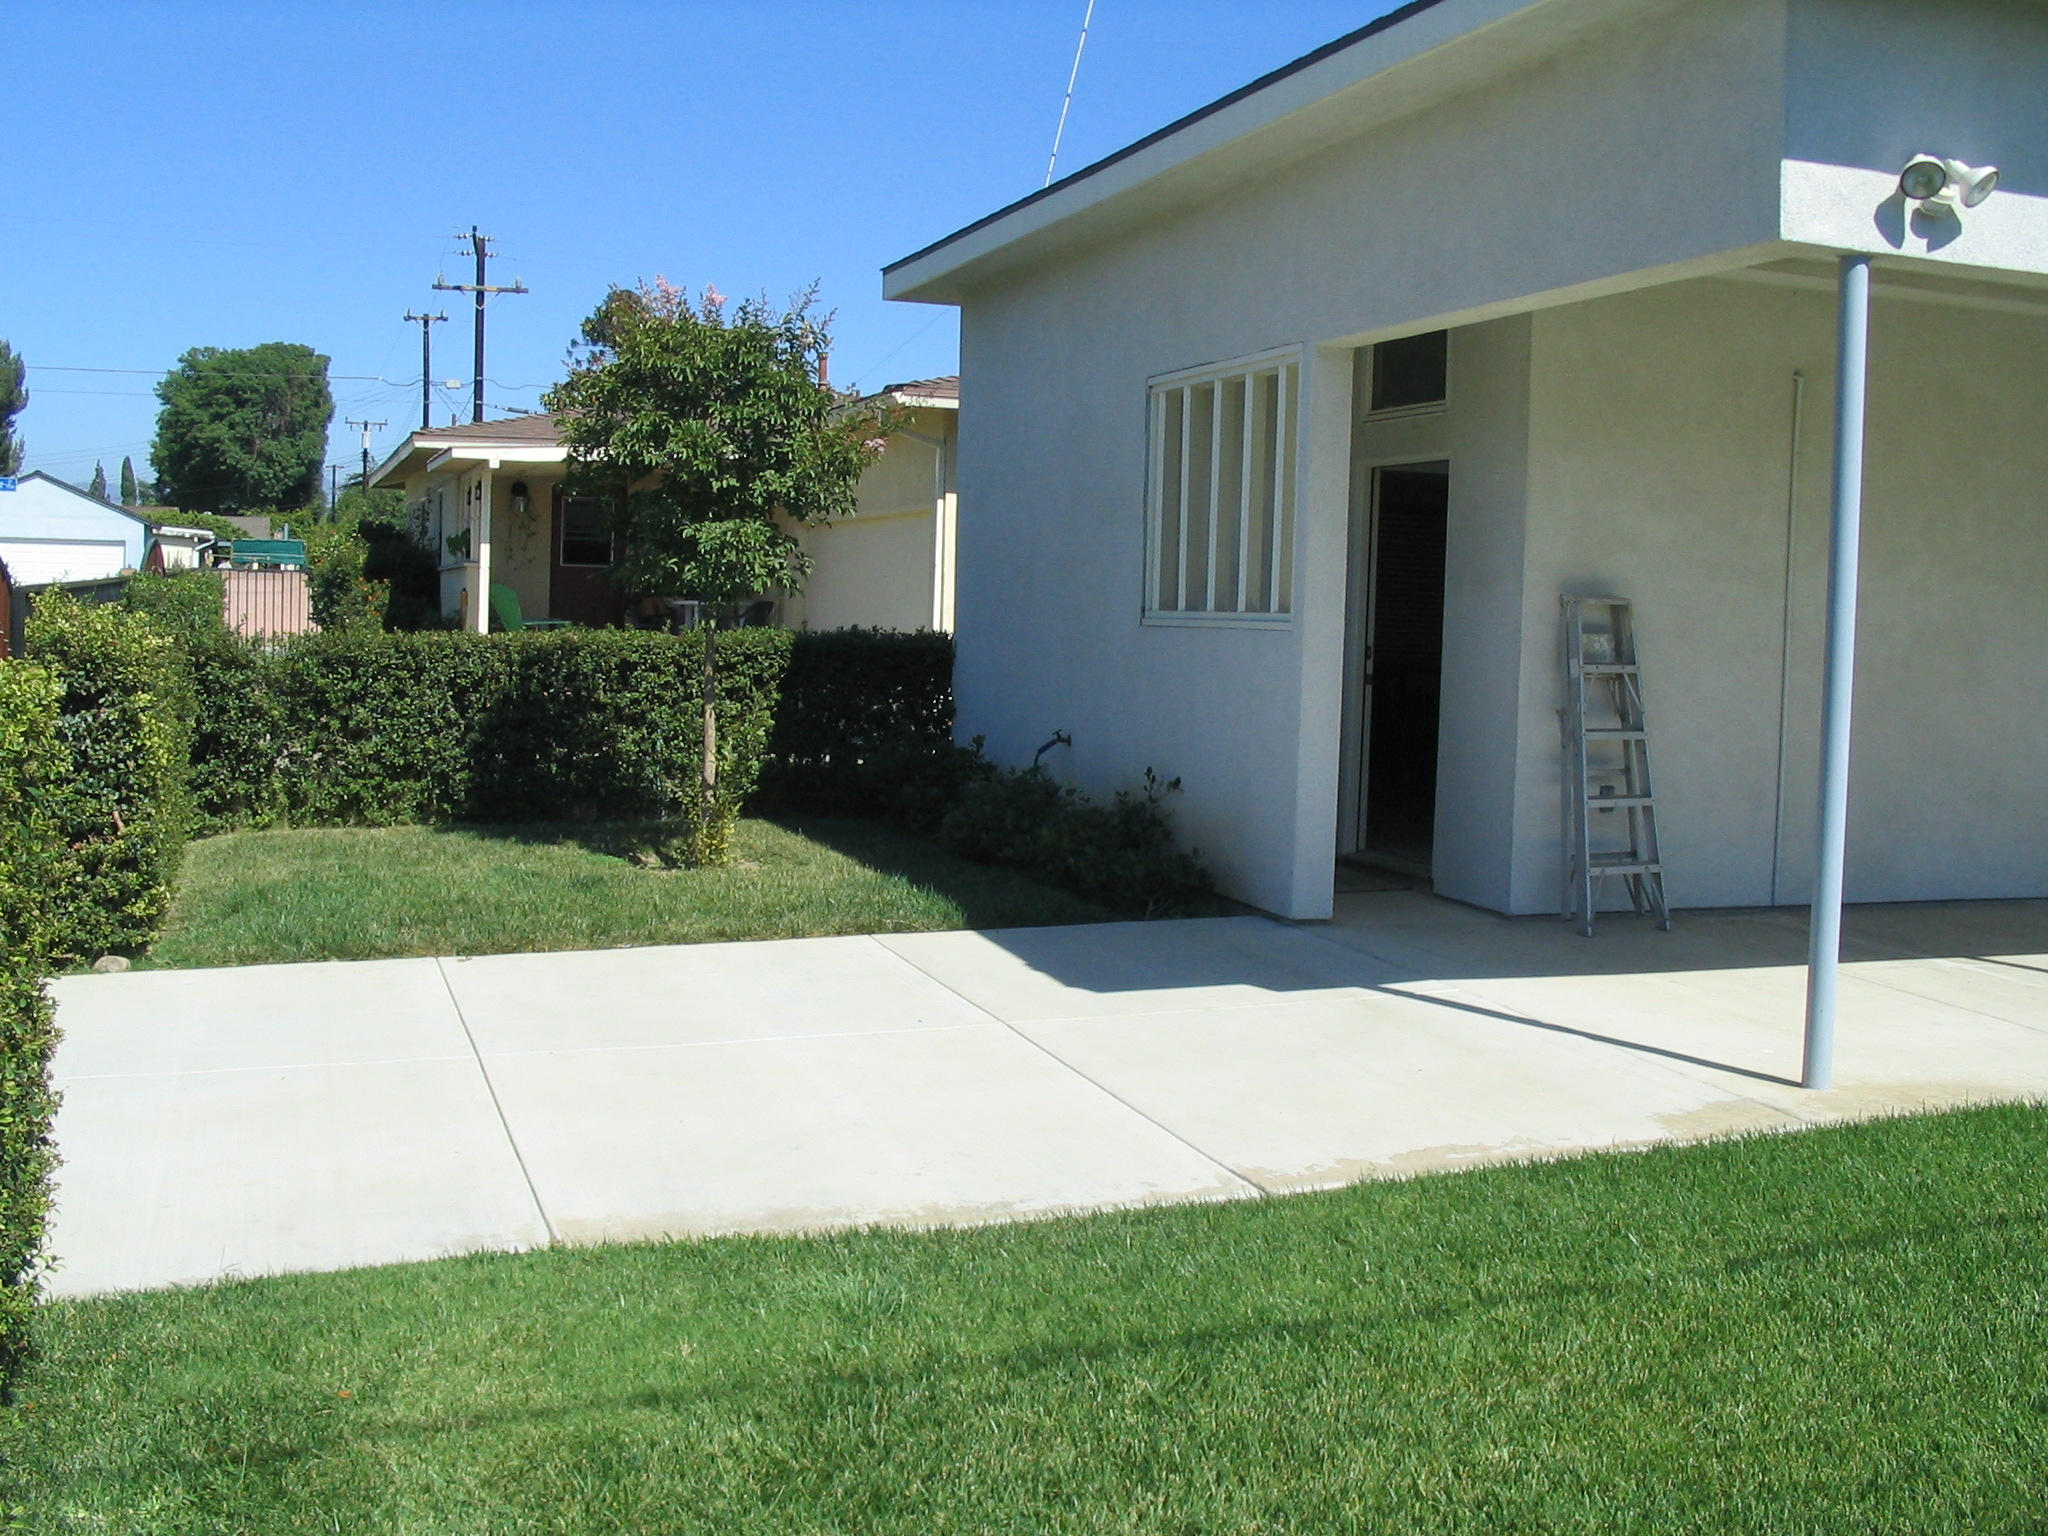 Existing Driveway